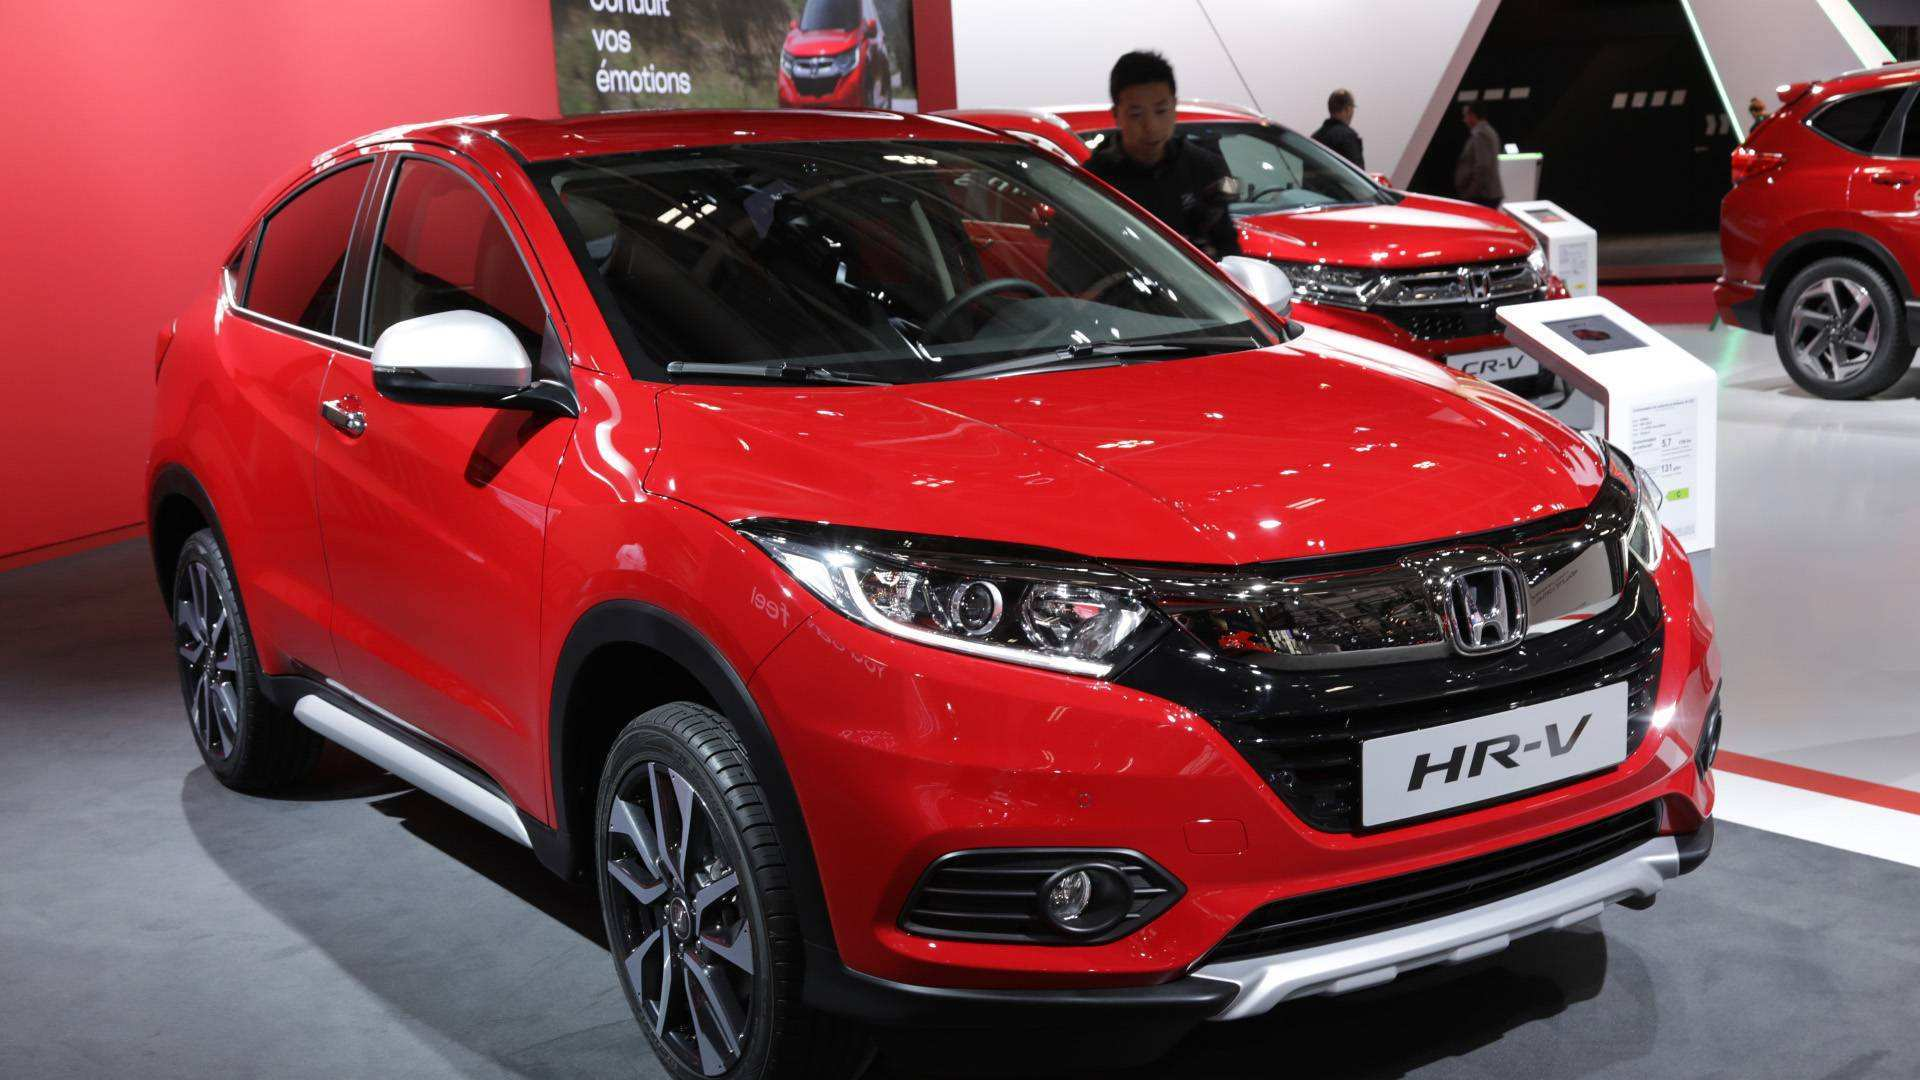 48 The Best 2020 Honda Vezels Research New